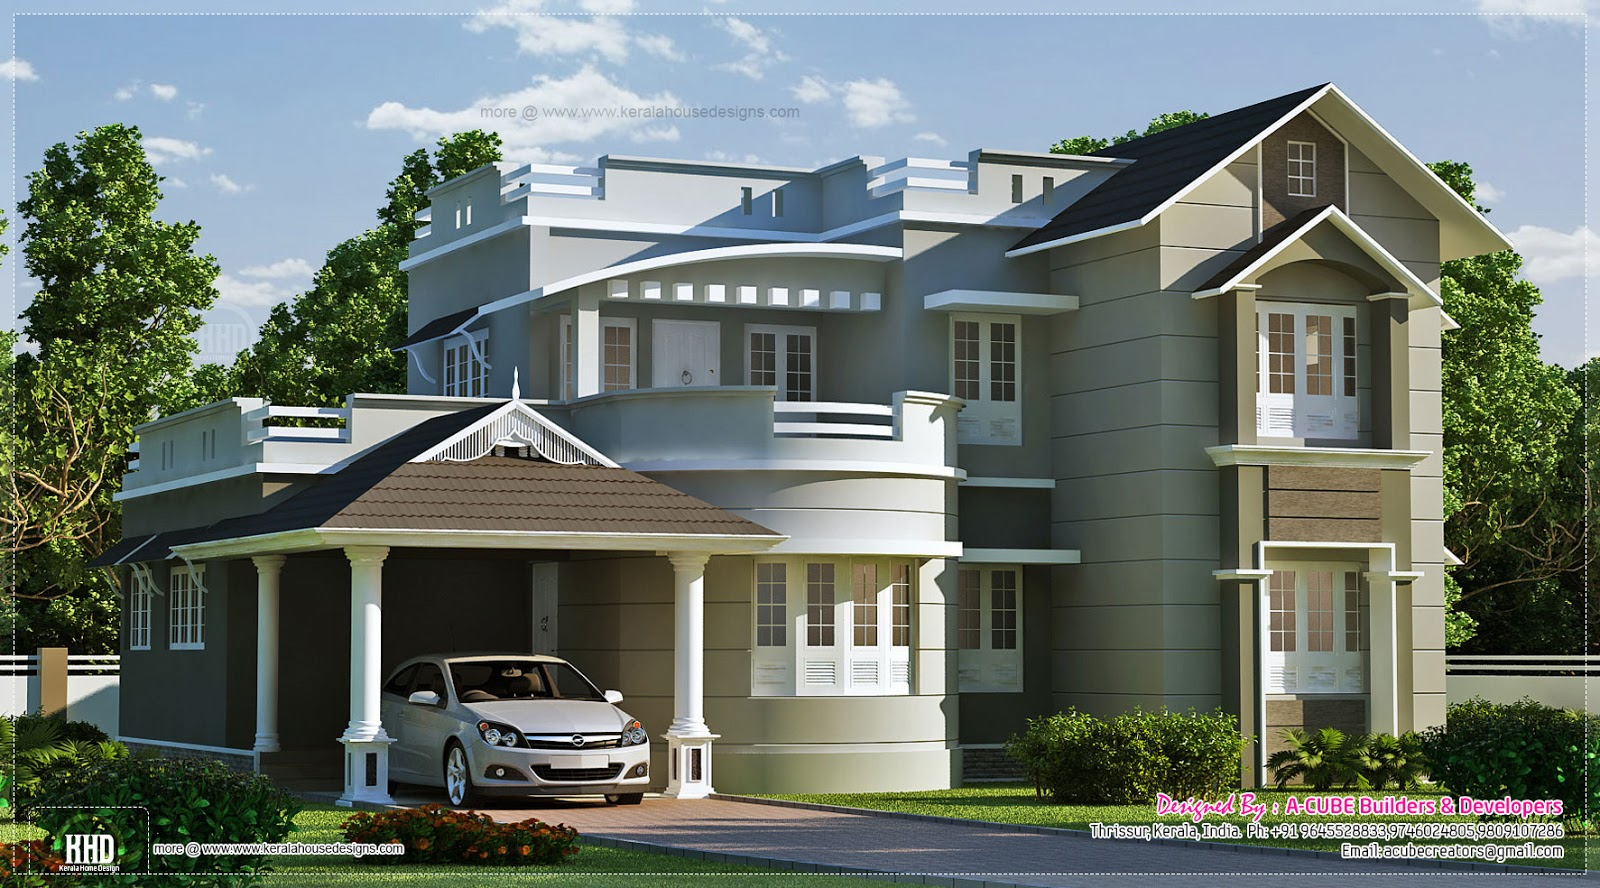 new style home exterior in 1800 kerala home design and floor plans. Black Bedroom Furniture Sets. Home Design Ideas